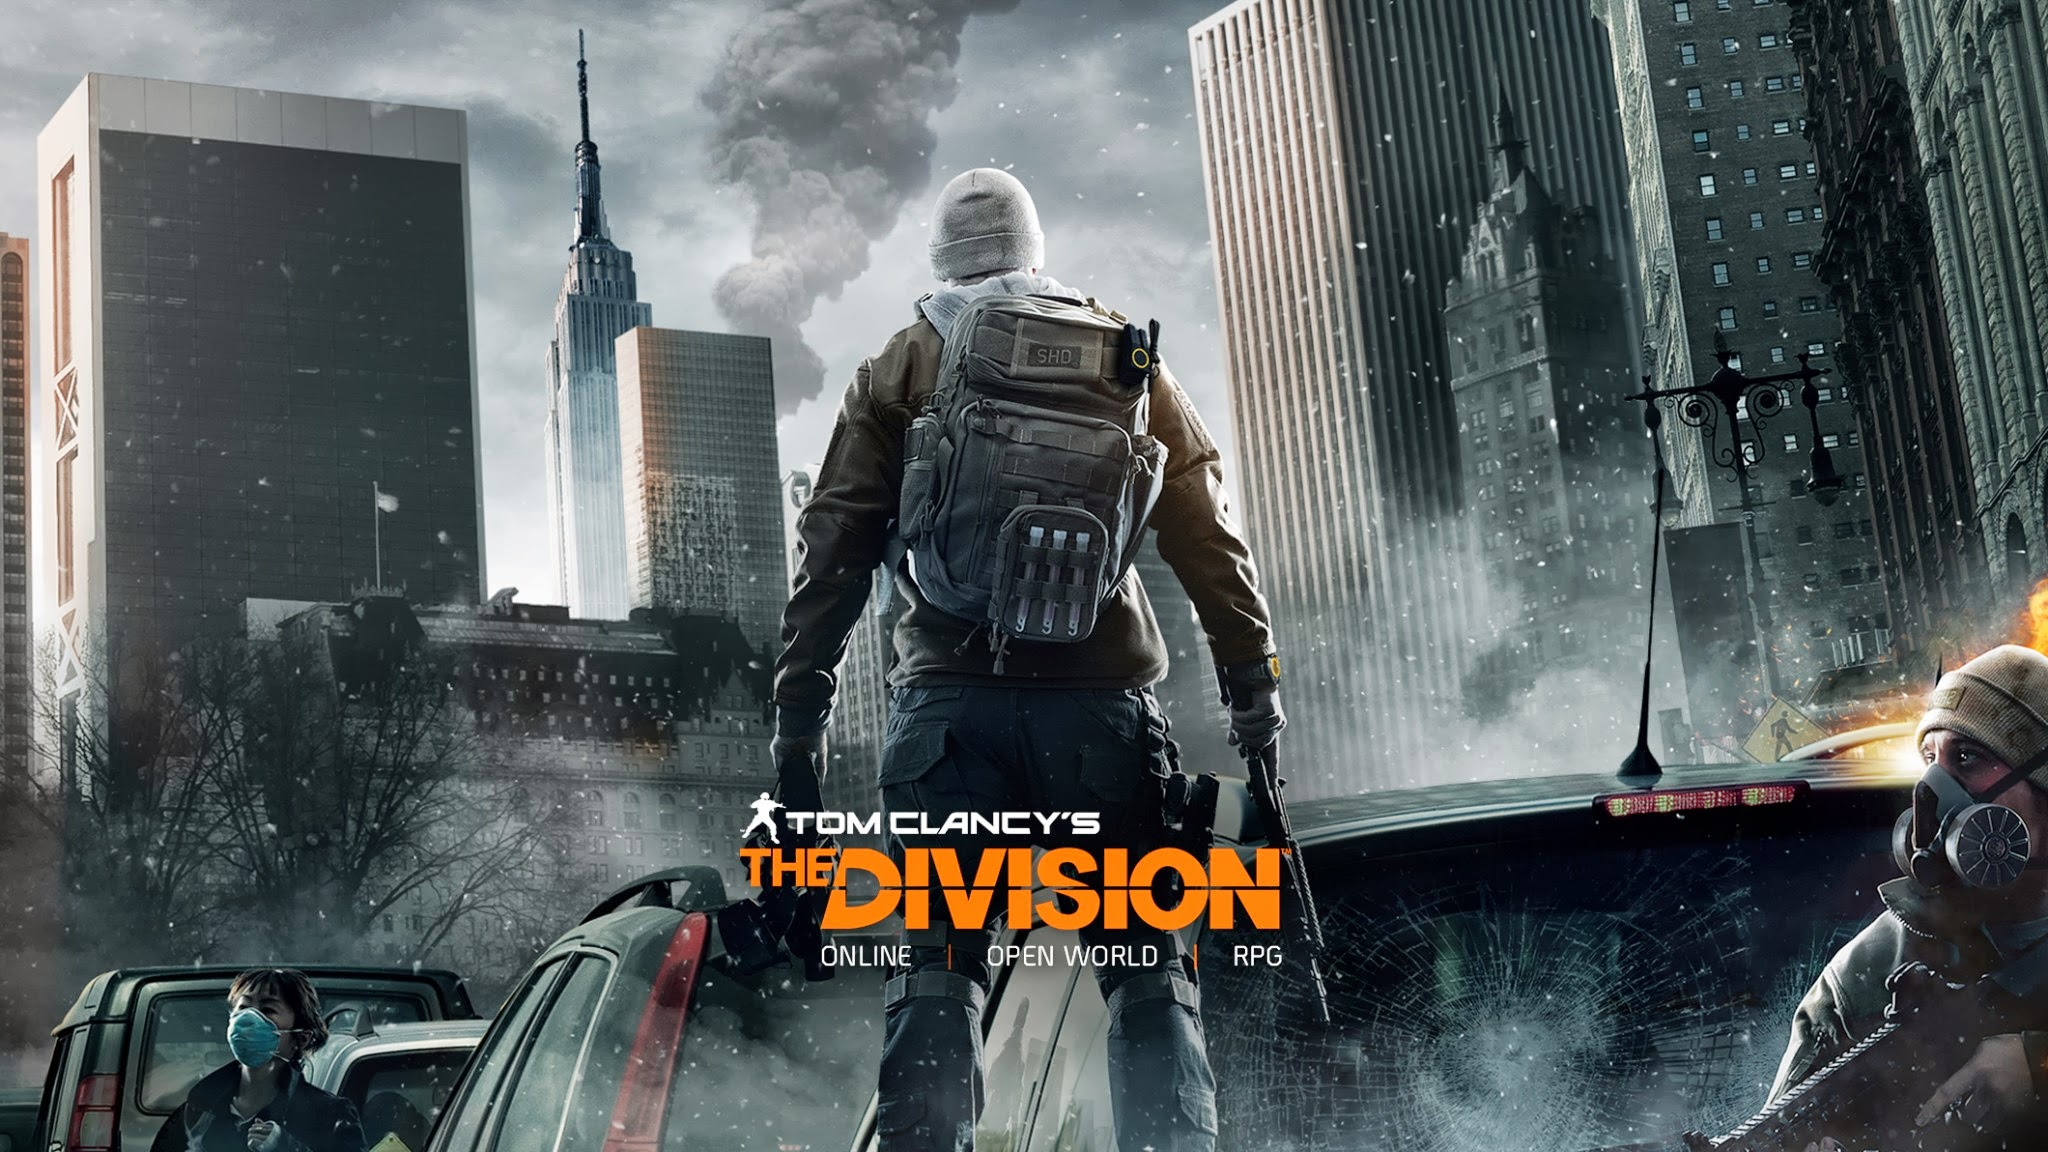 The Division Movie Announced By Ubisoft